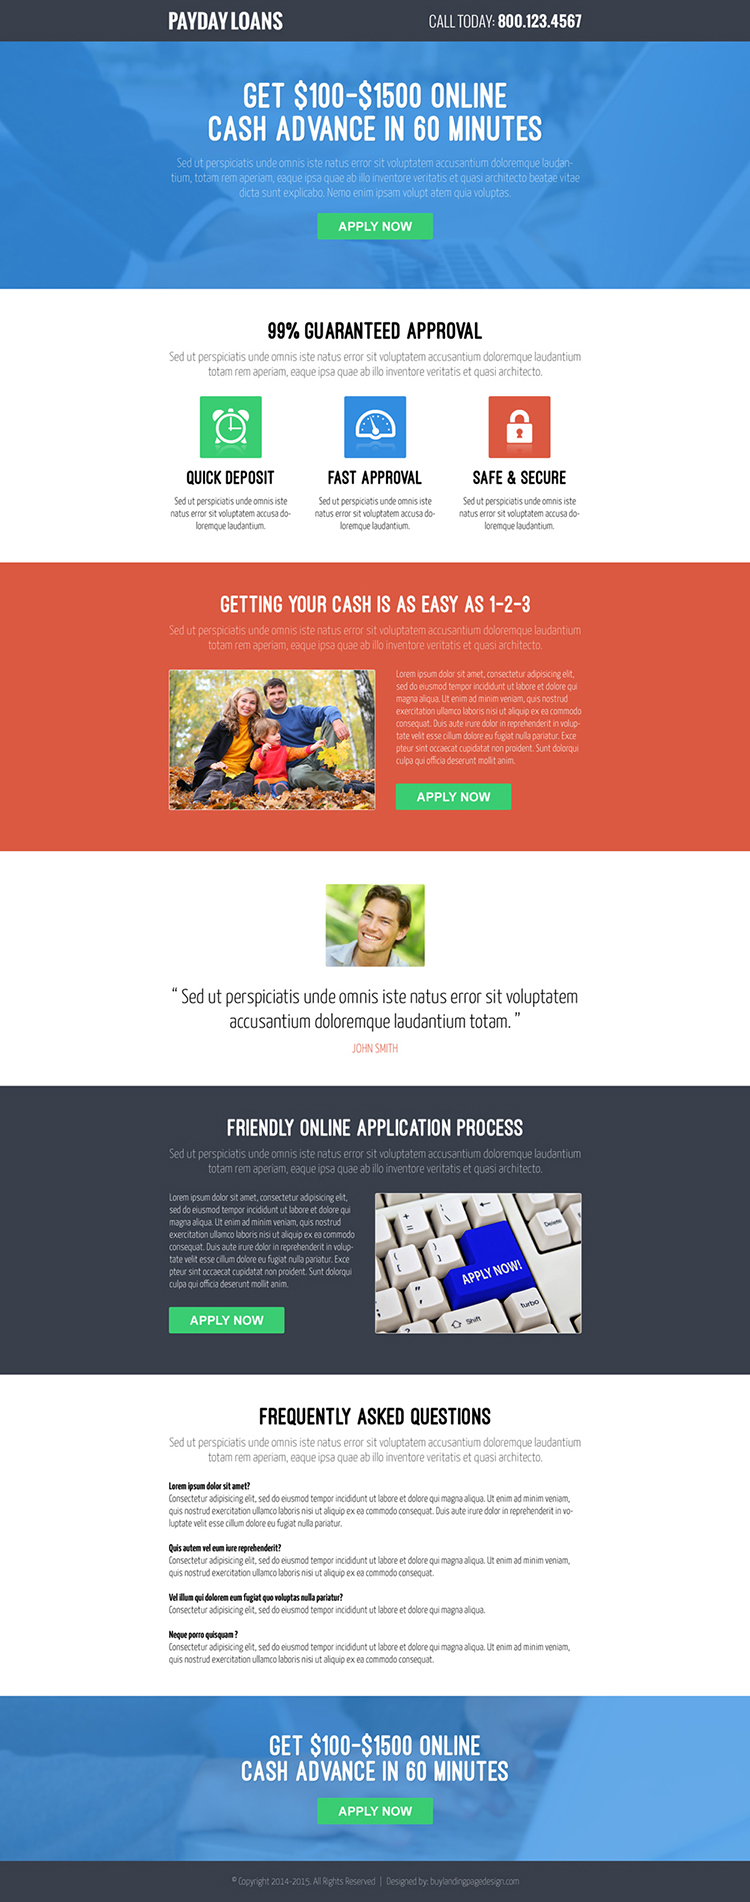 online cash advance call to action converting payday loan responsive landing page design